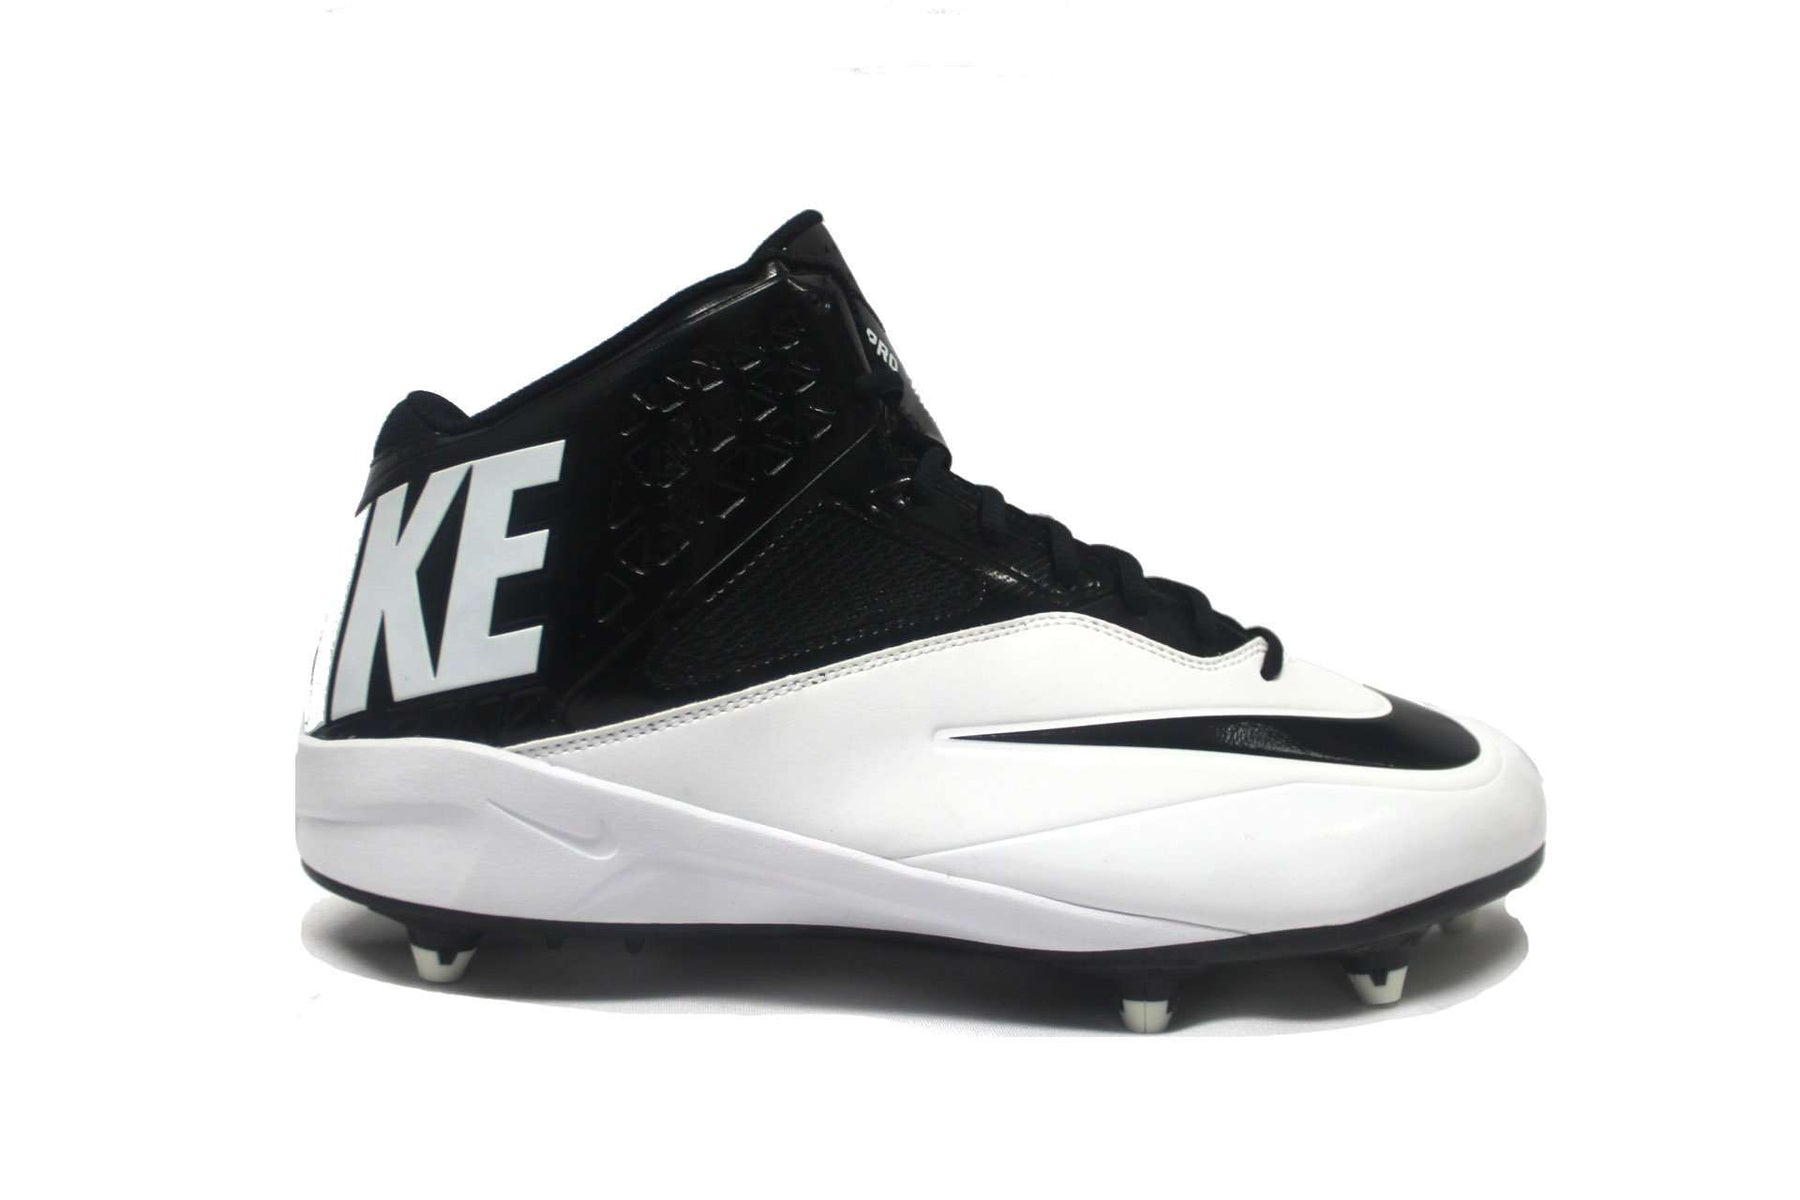 buy popular 1d475 68a27 Nike Lunar Code Pro 3 4 Wide D Football Cleats - League Outfitters